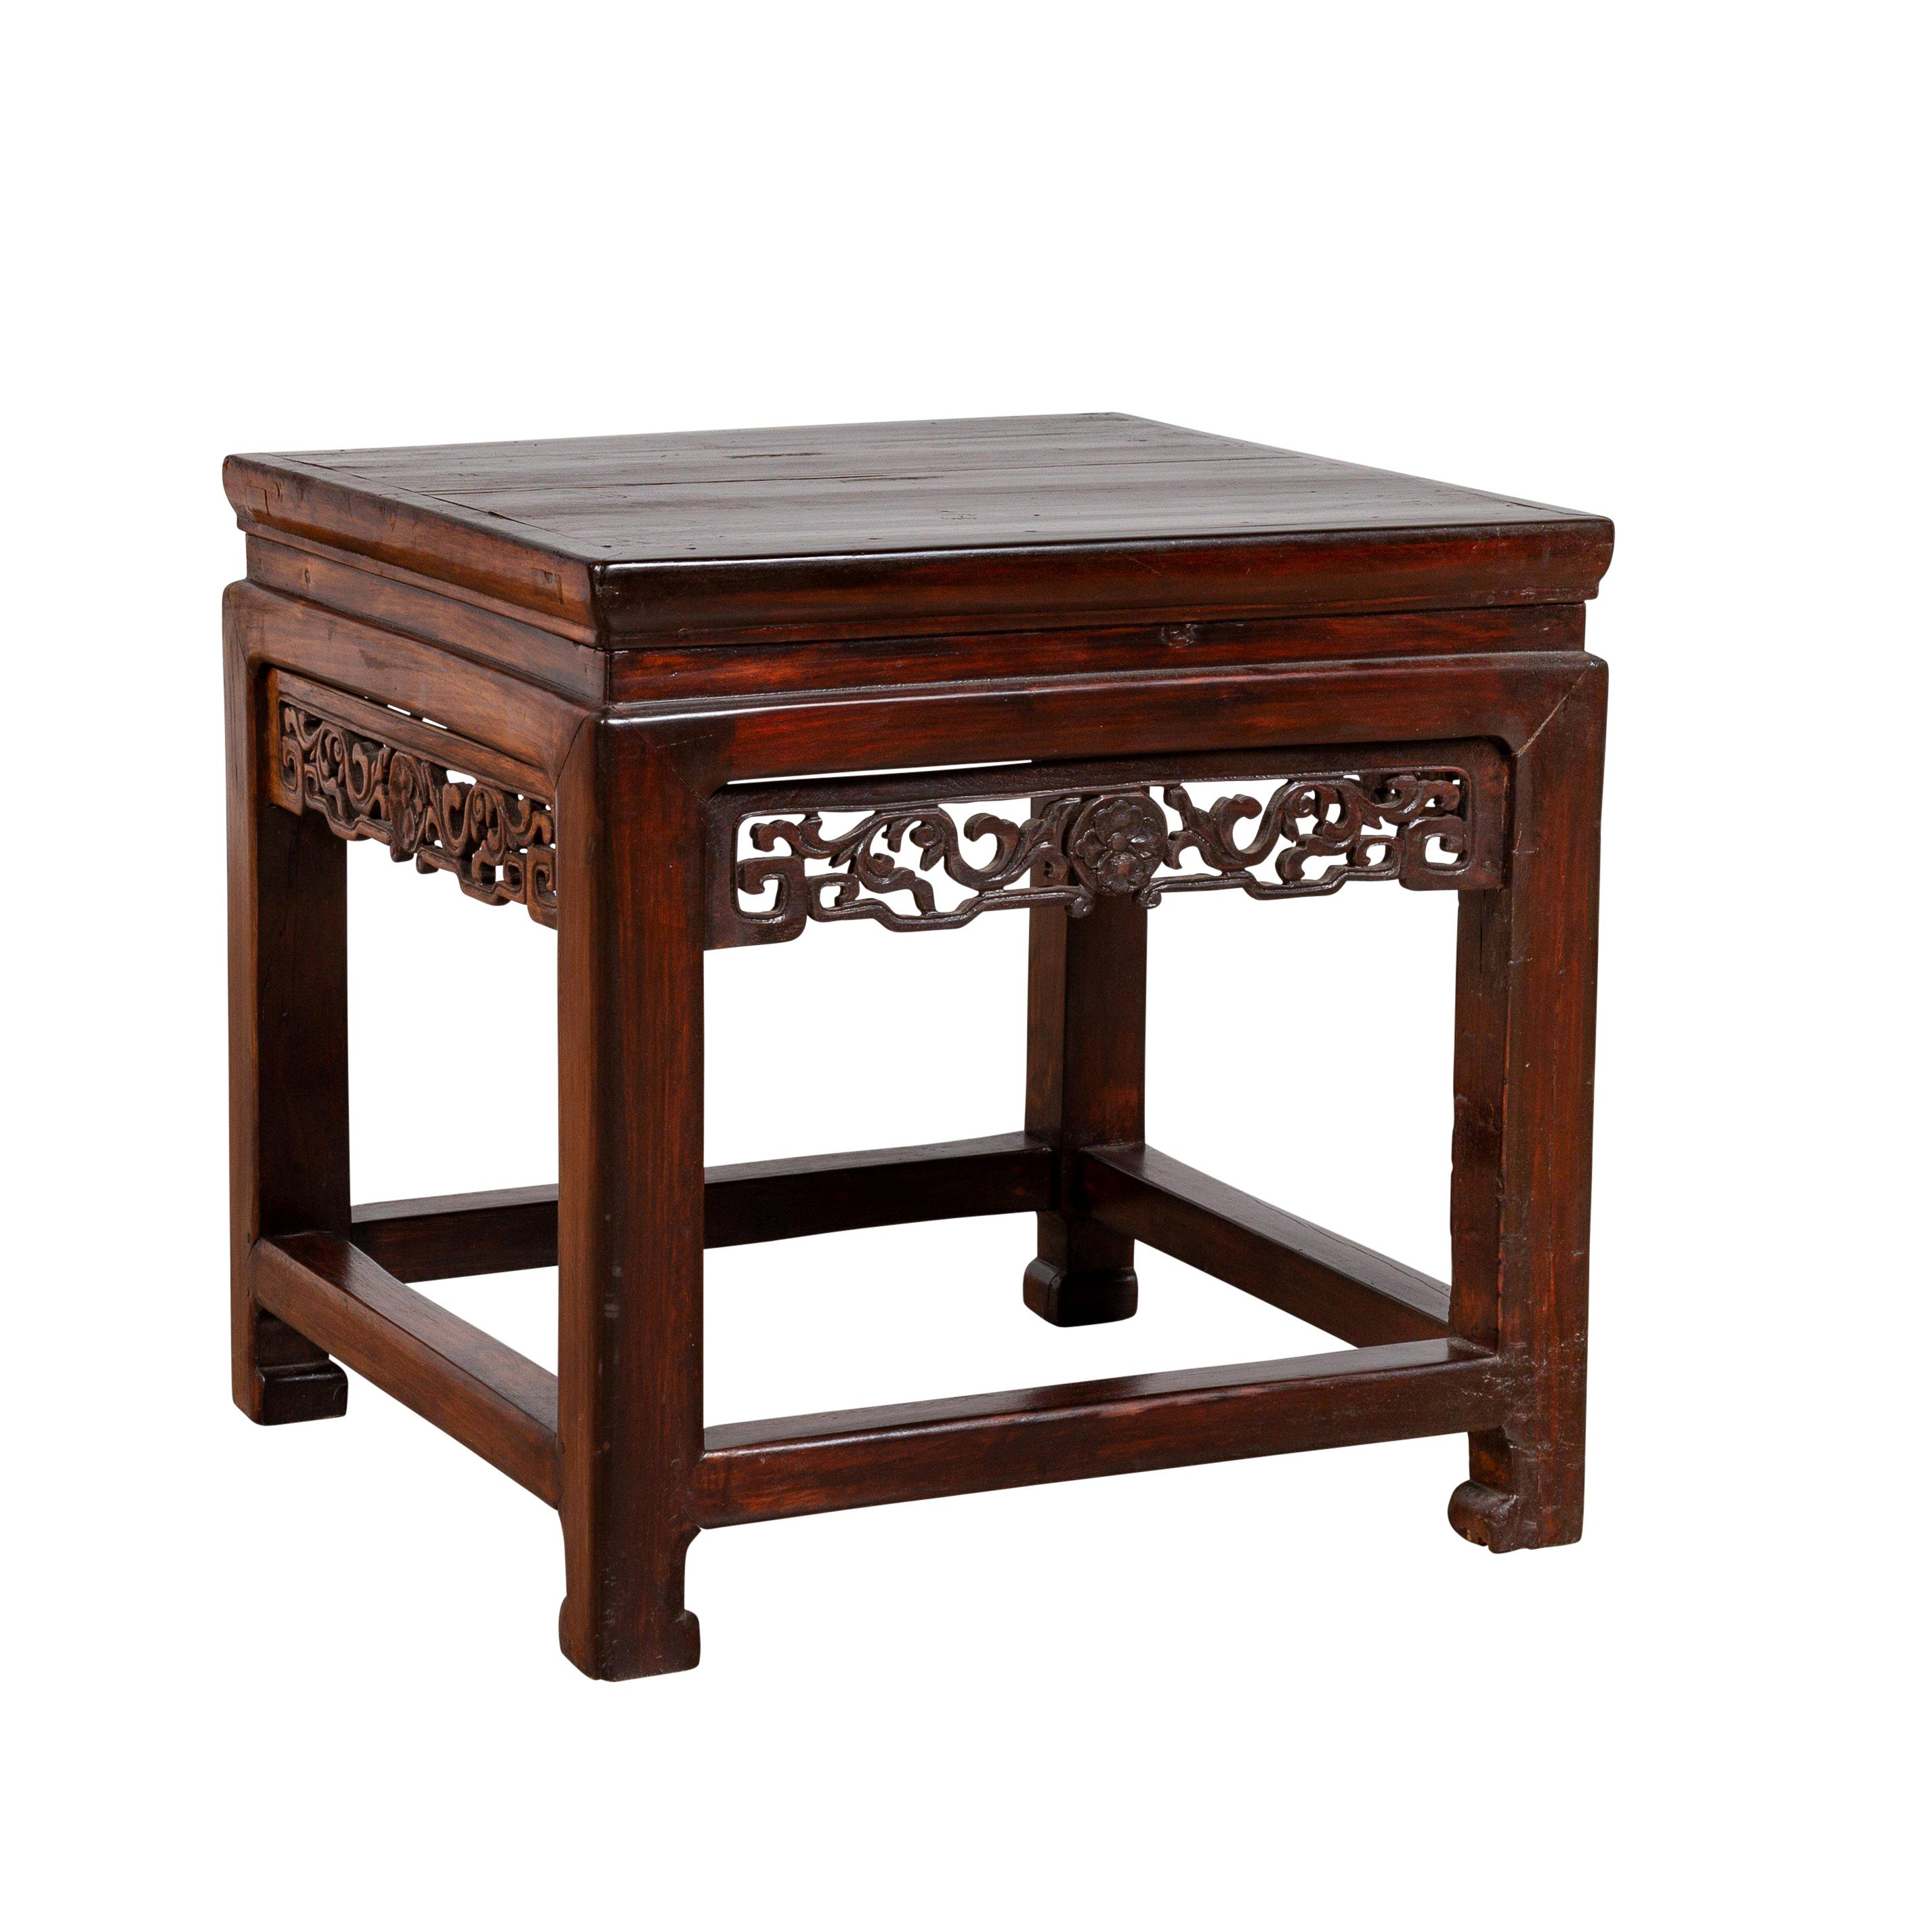 Dark Wood Furniture Chinese Vintage Side Table With Dark Wood Patina And Hand Carved Foliage Décor